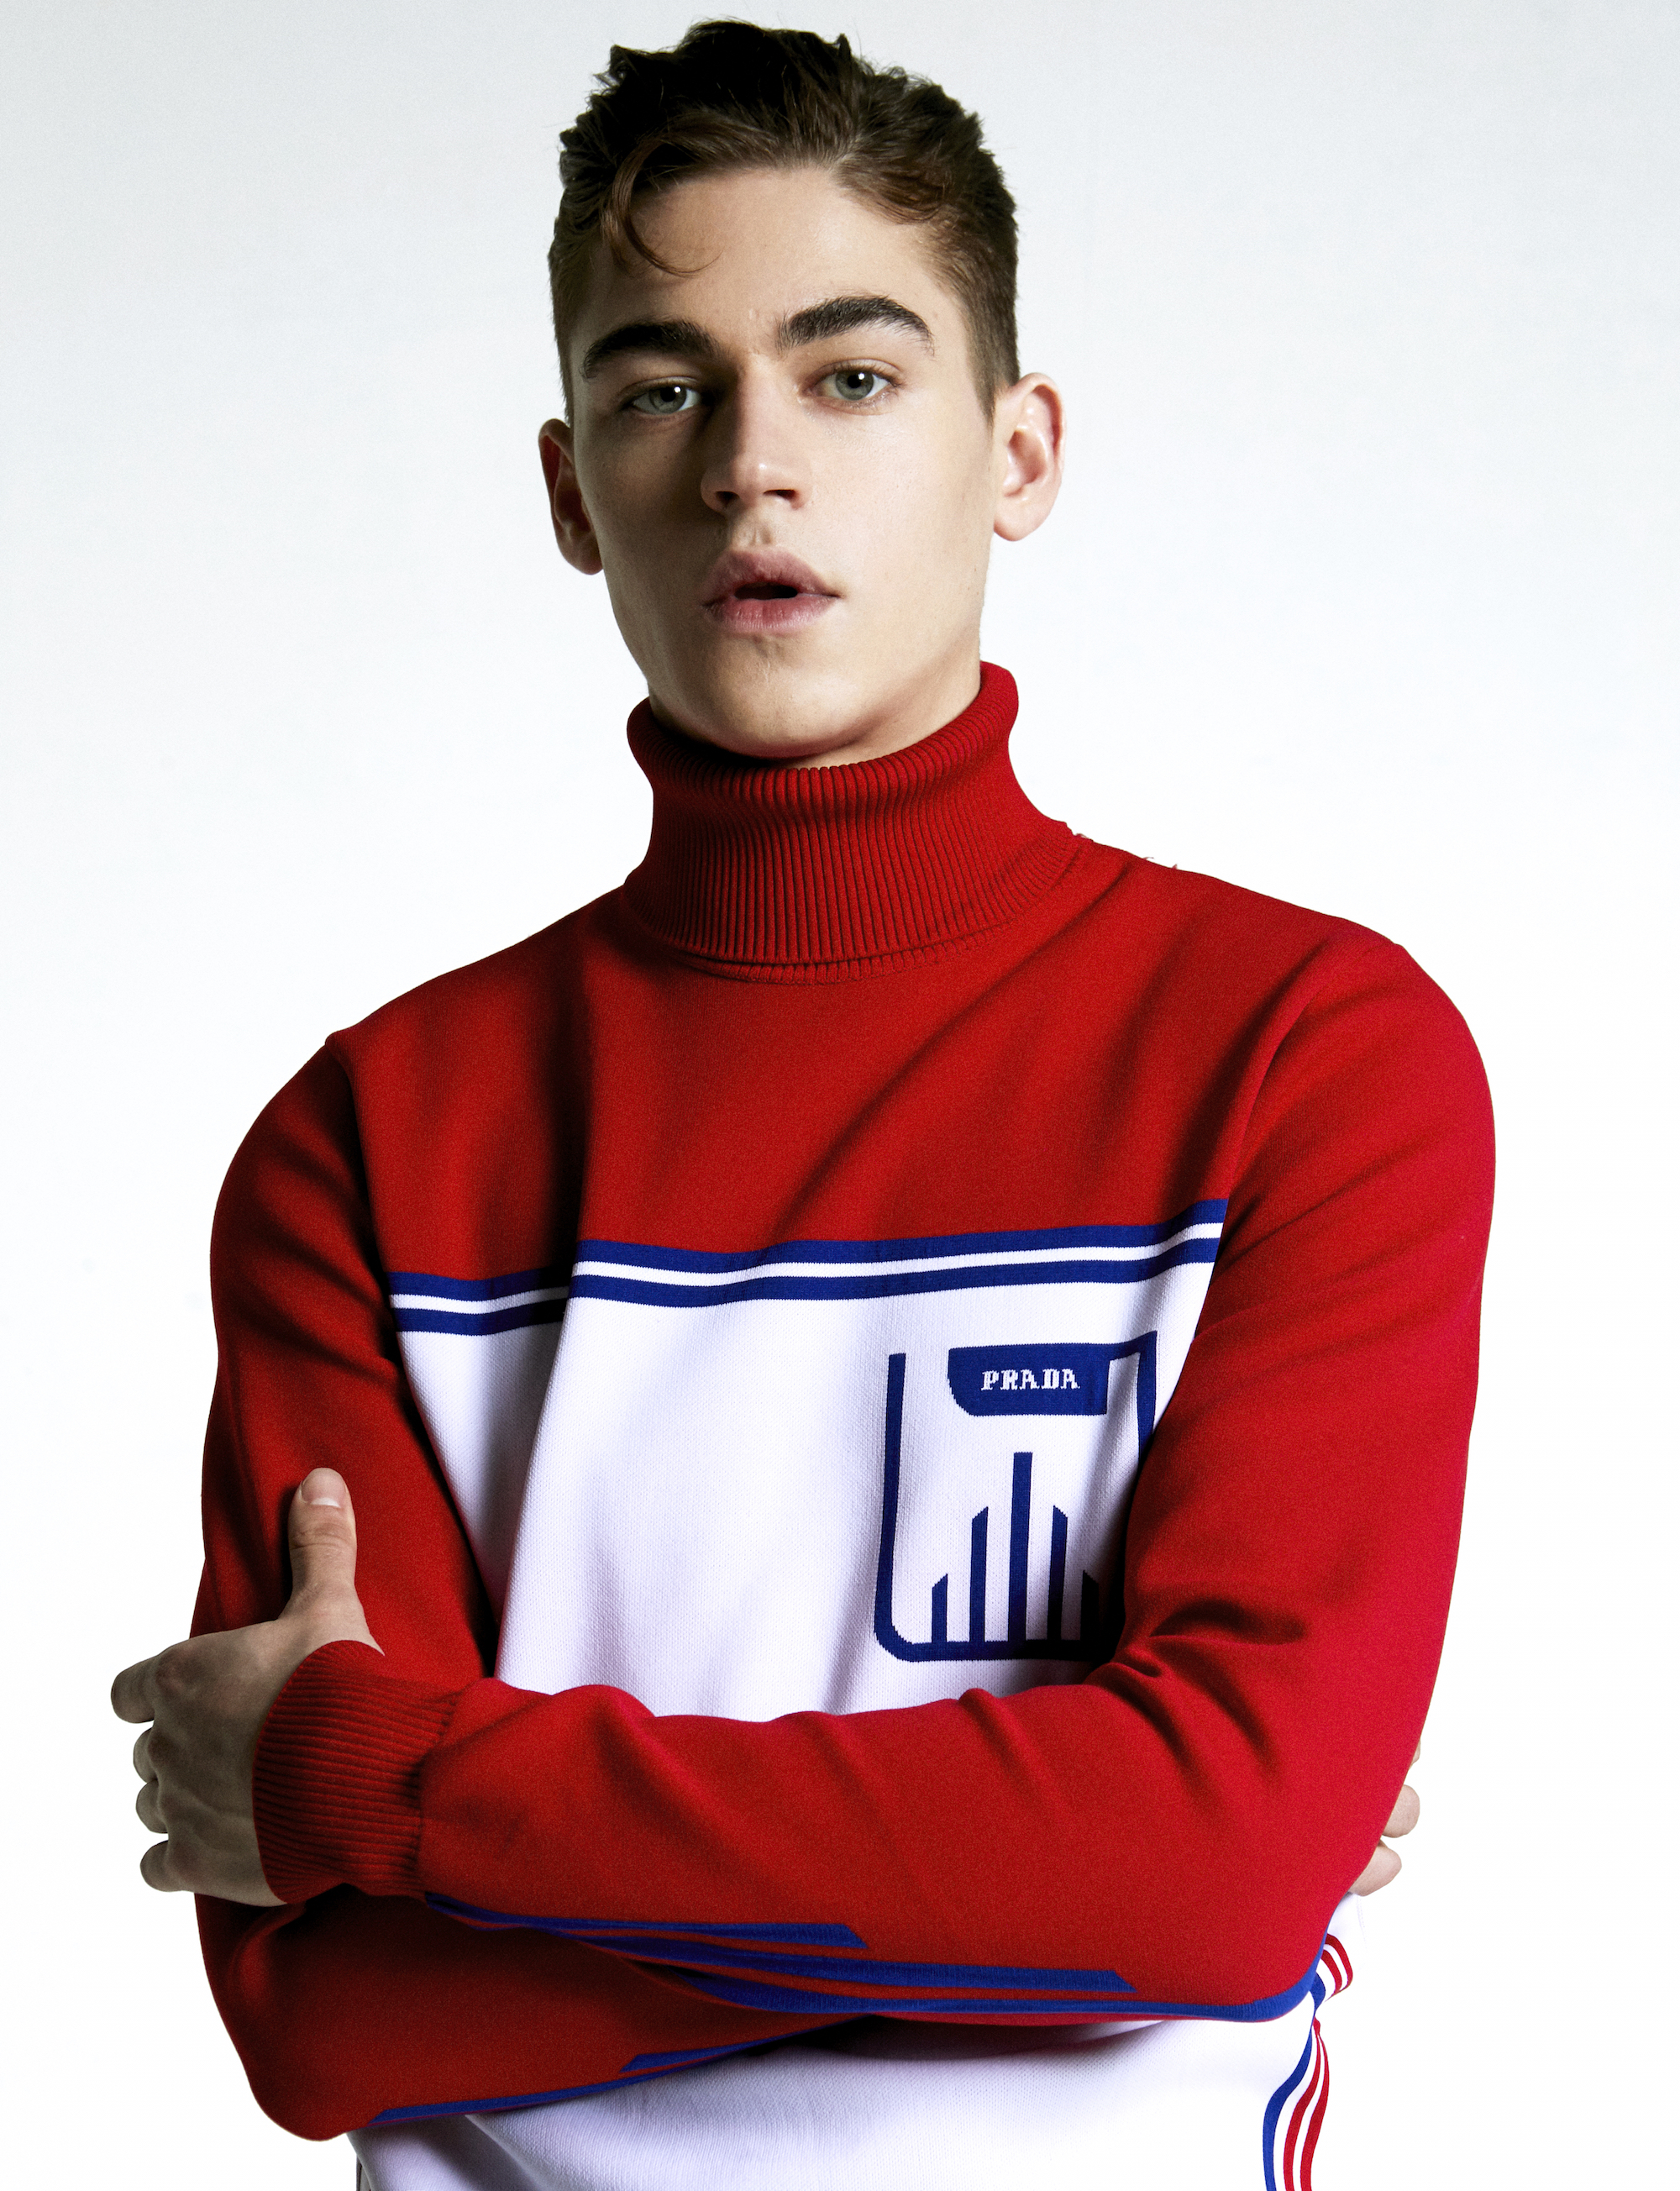 Hero Fiennes Tiffin in the Spring 19 issue of Wonderland in red top